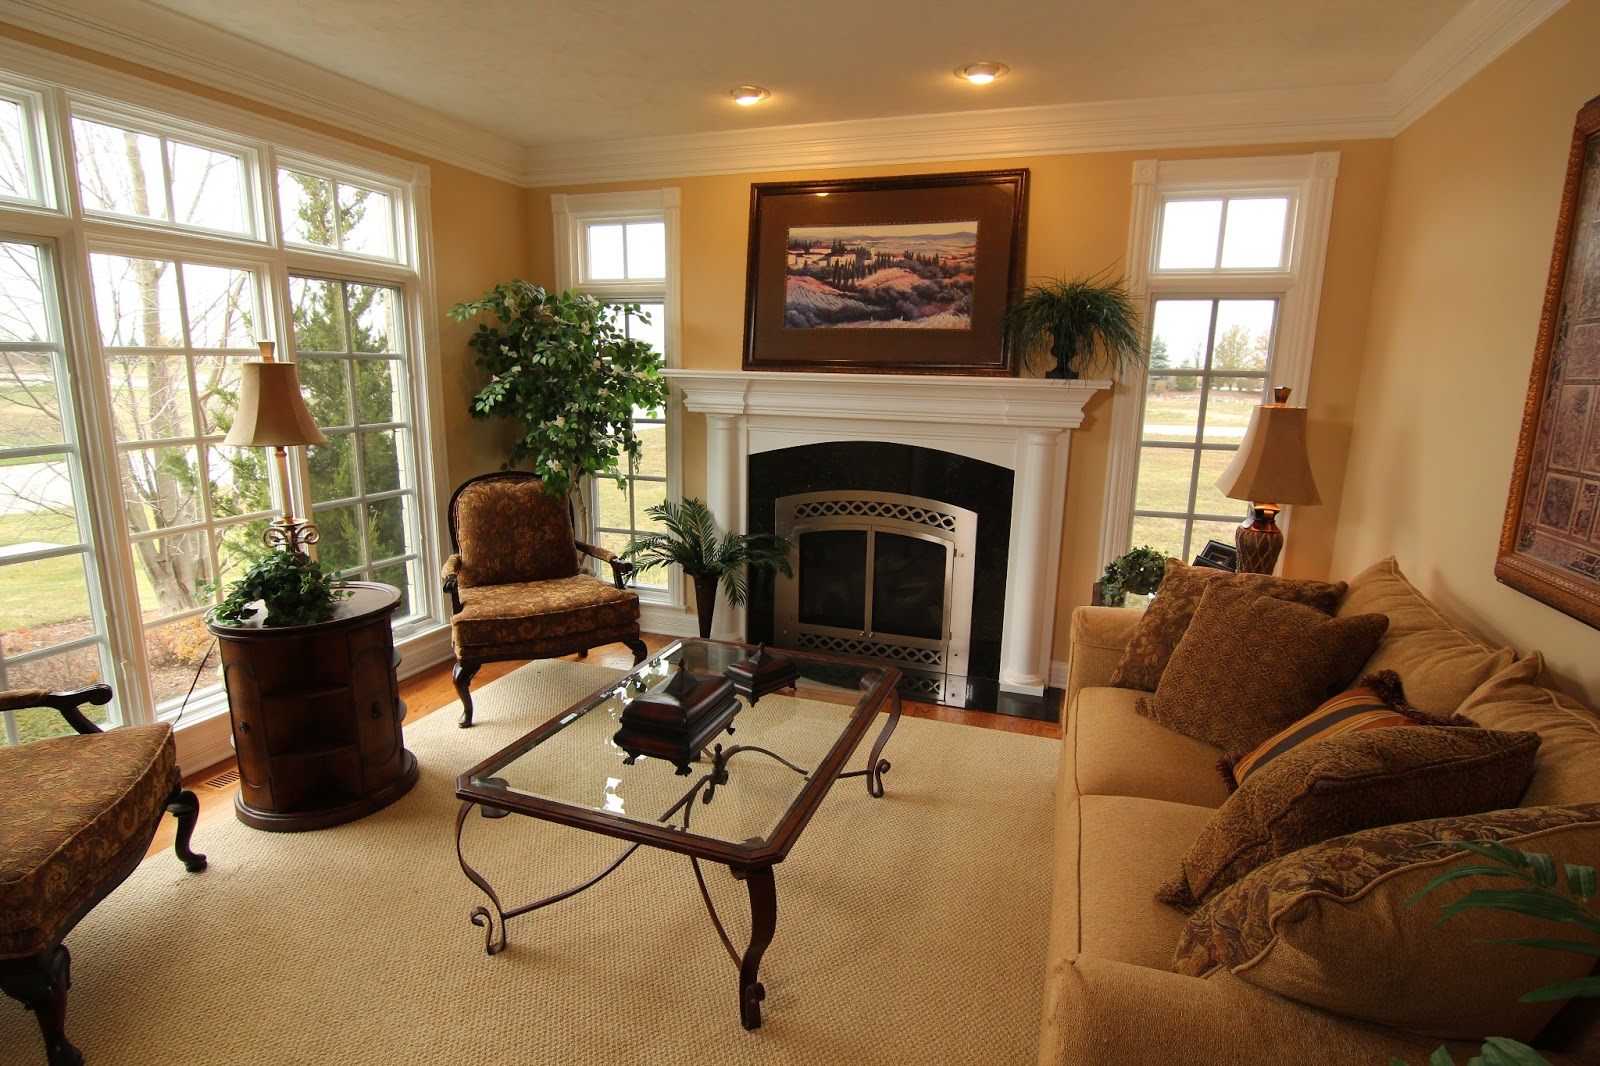 Cozy Fireplace Decor: Tips for Keeping Warm in Style